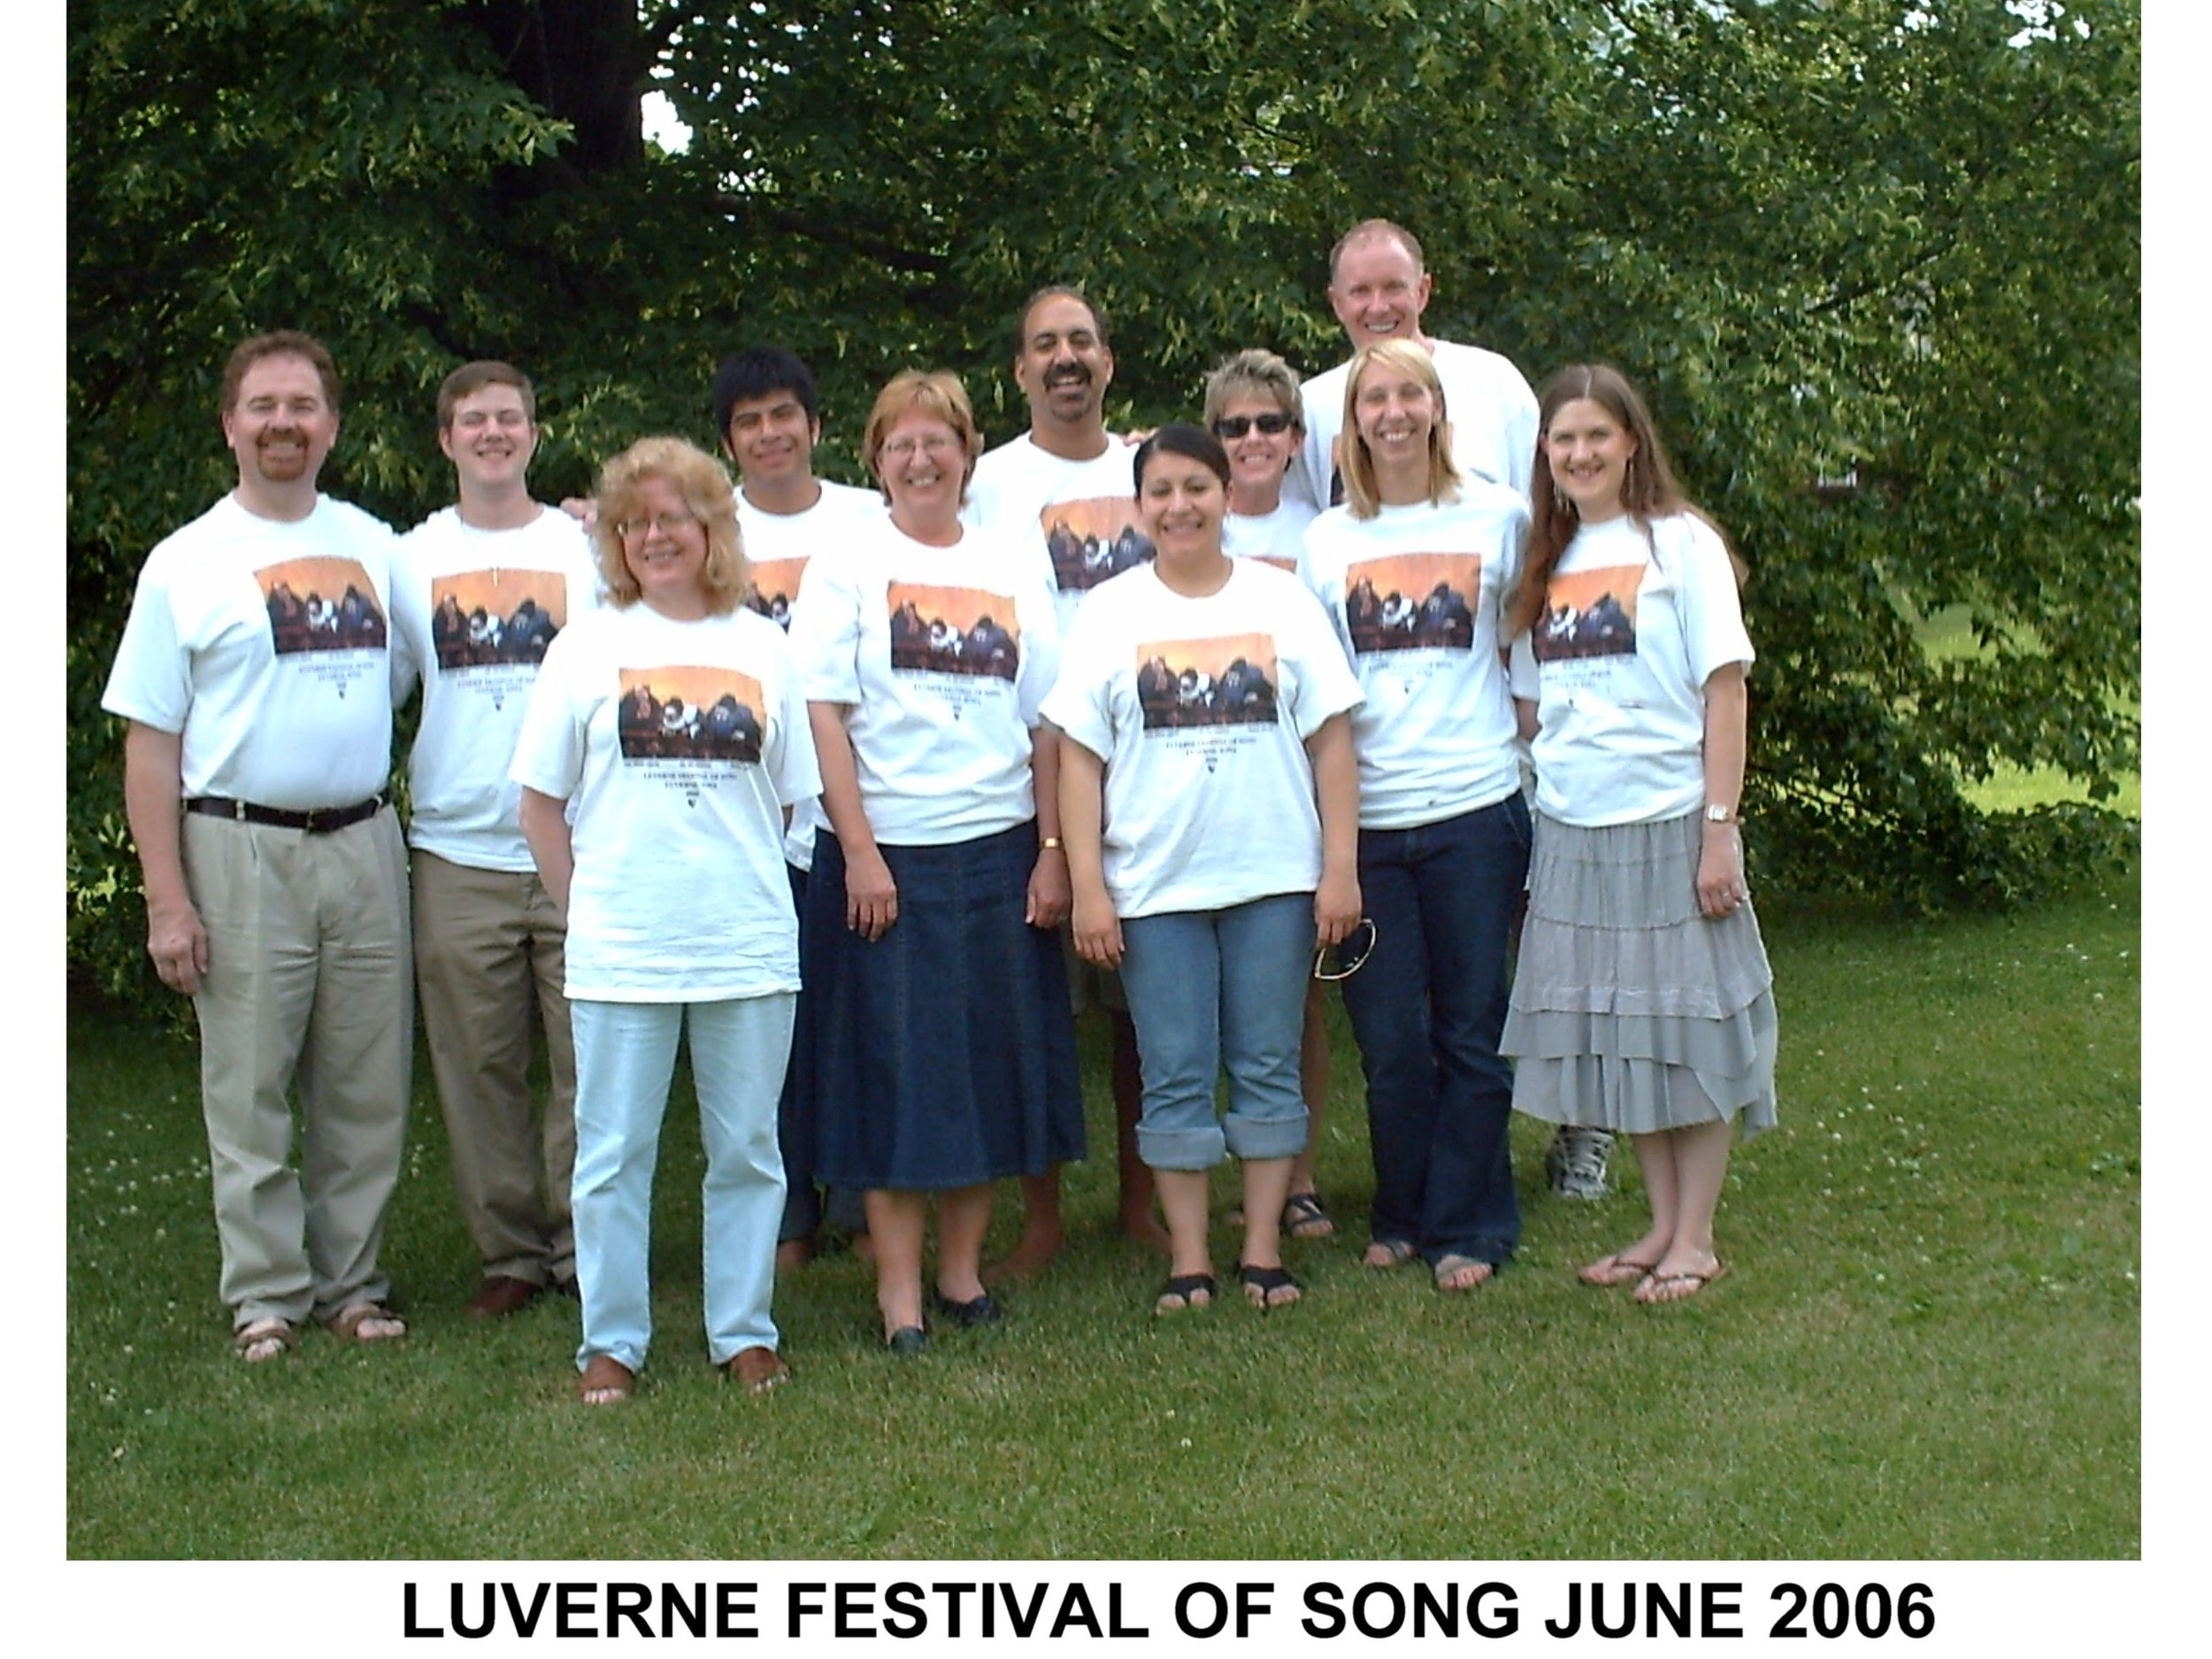 Song FestivaL Luverne, Iowa - Home of masterclasses, mentoring, and music collaborations.